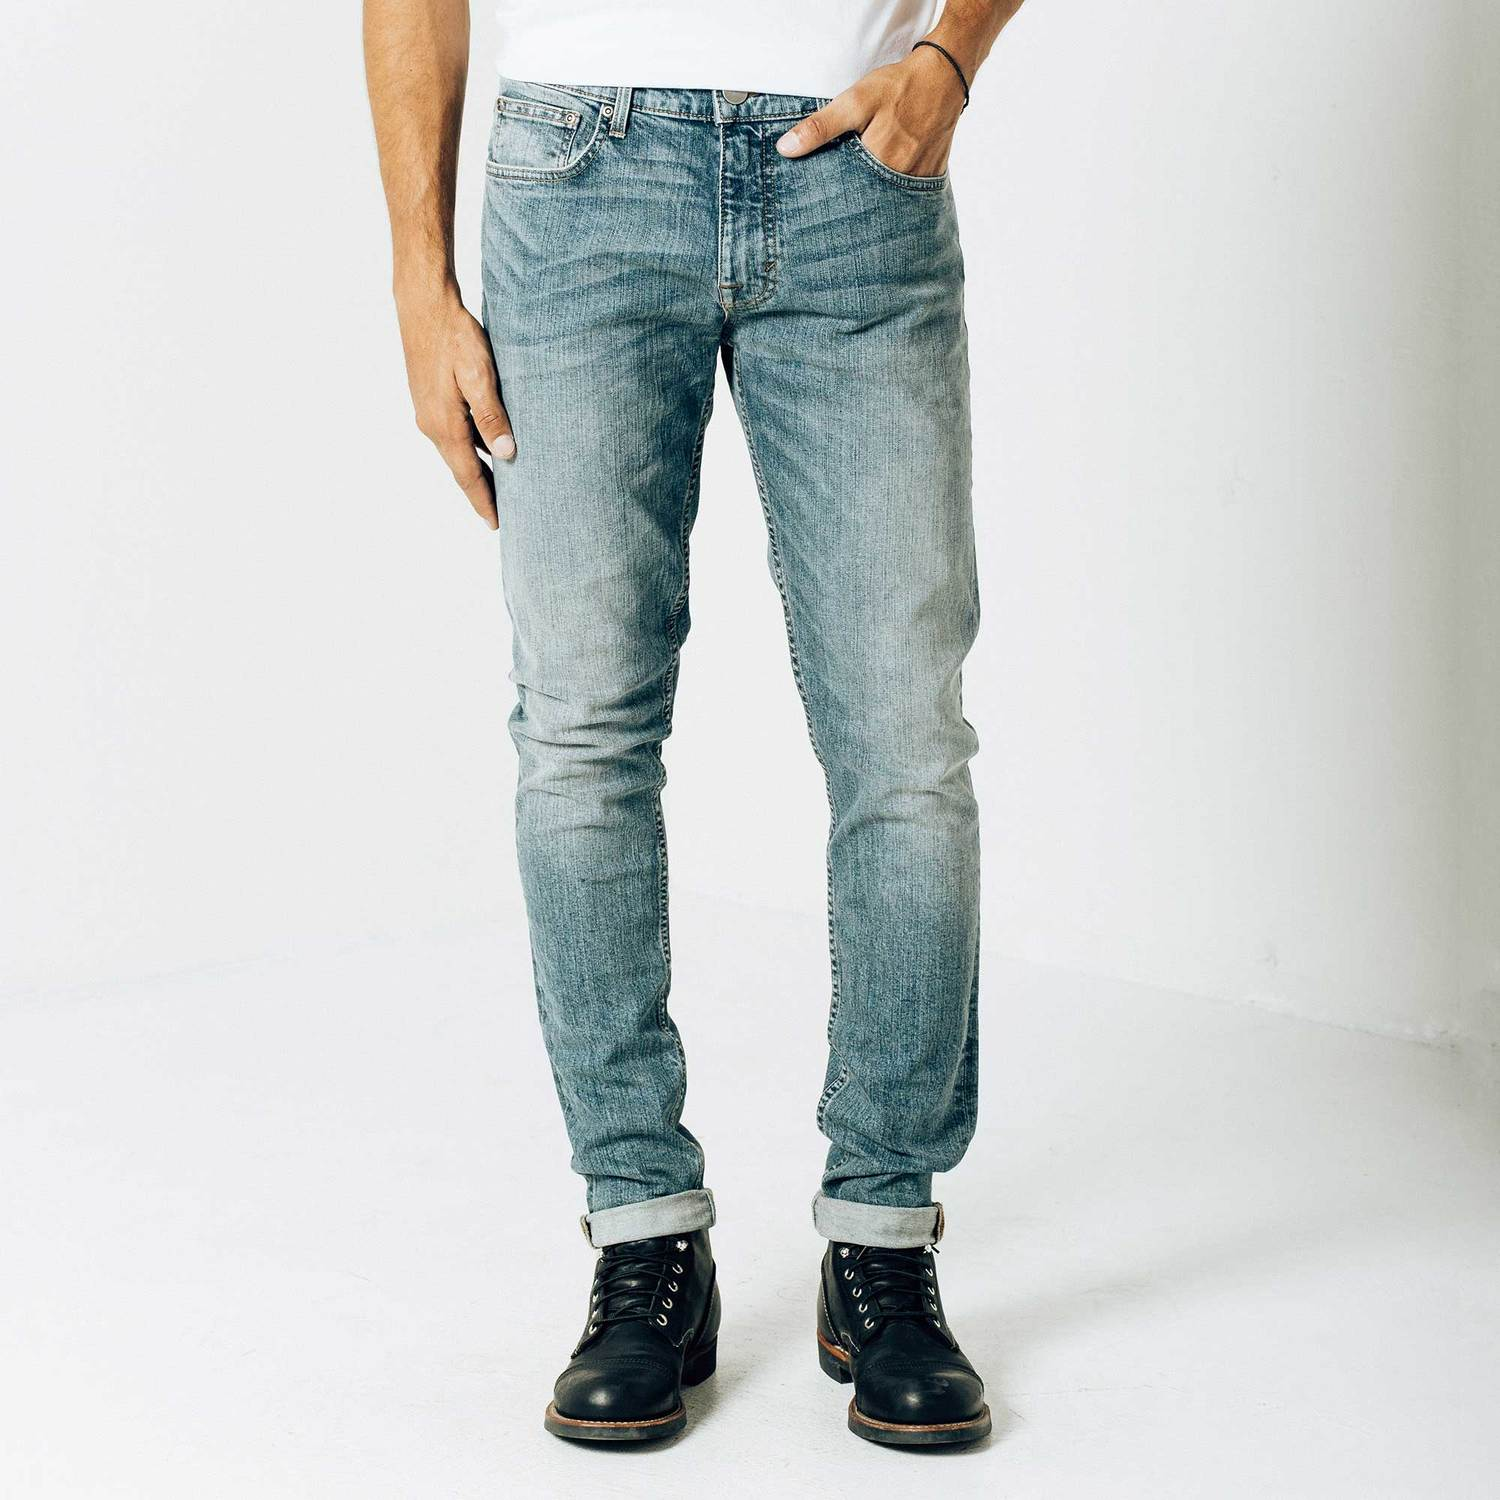 mens skinny jeans skinny-slim jeans in light wash hrbffvc